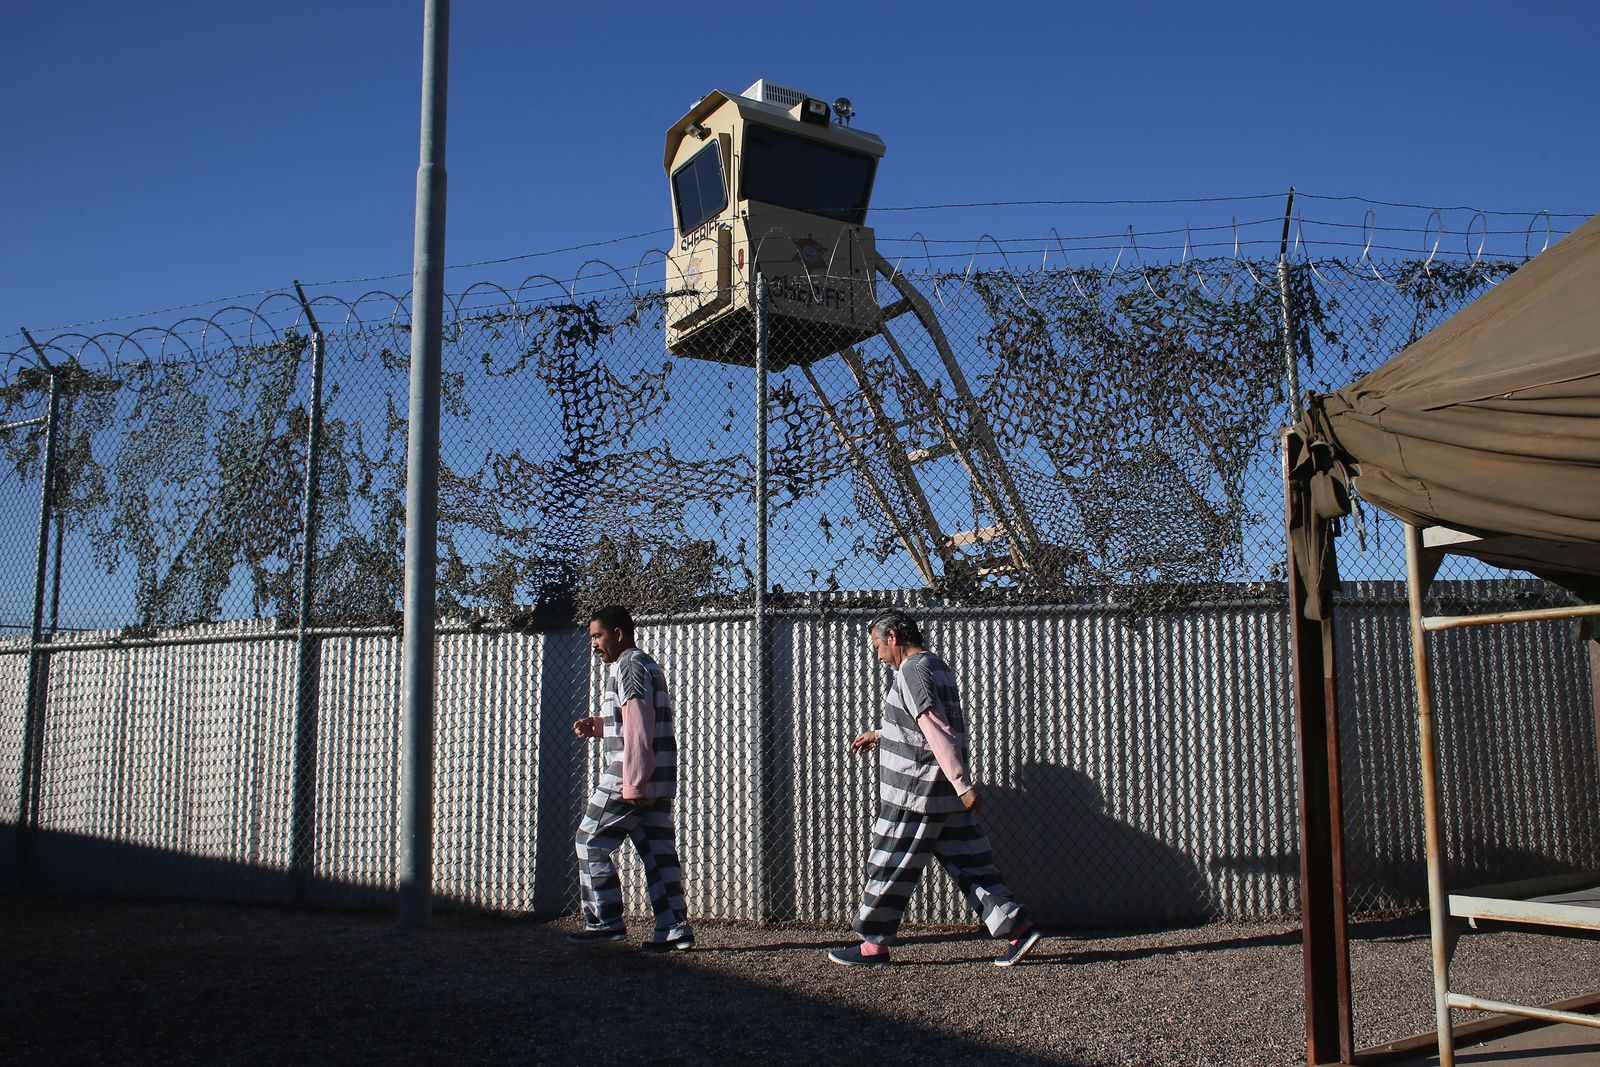 Maricopa County Tent City Jail Houses Undocumented Immigrants Convicted of Crimes